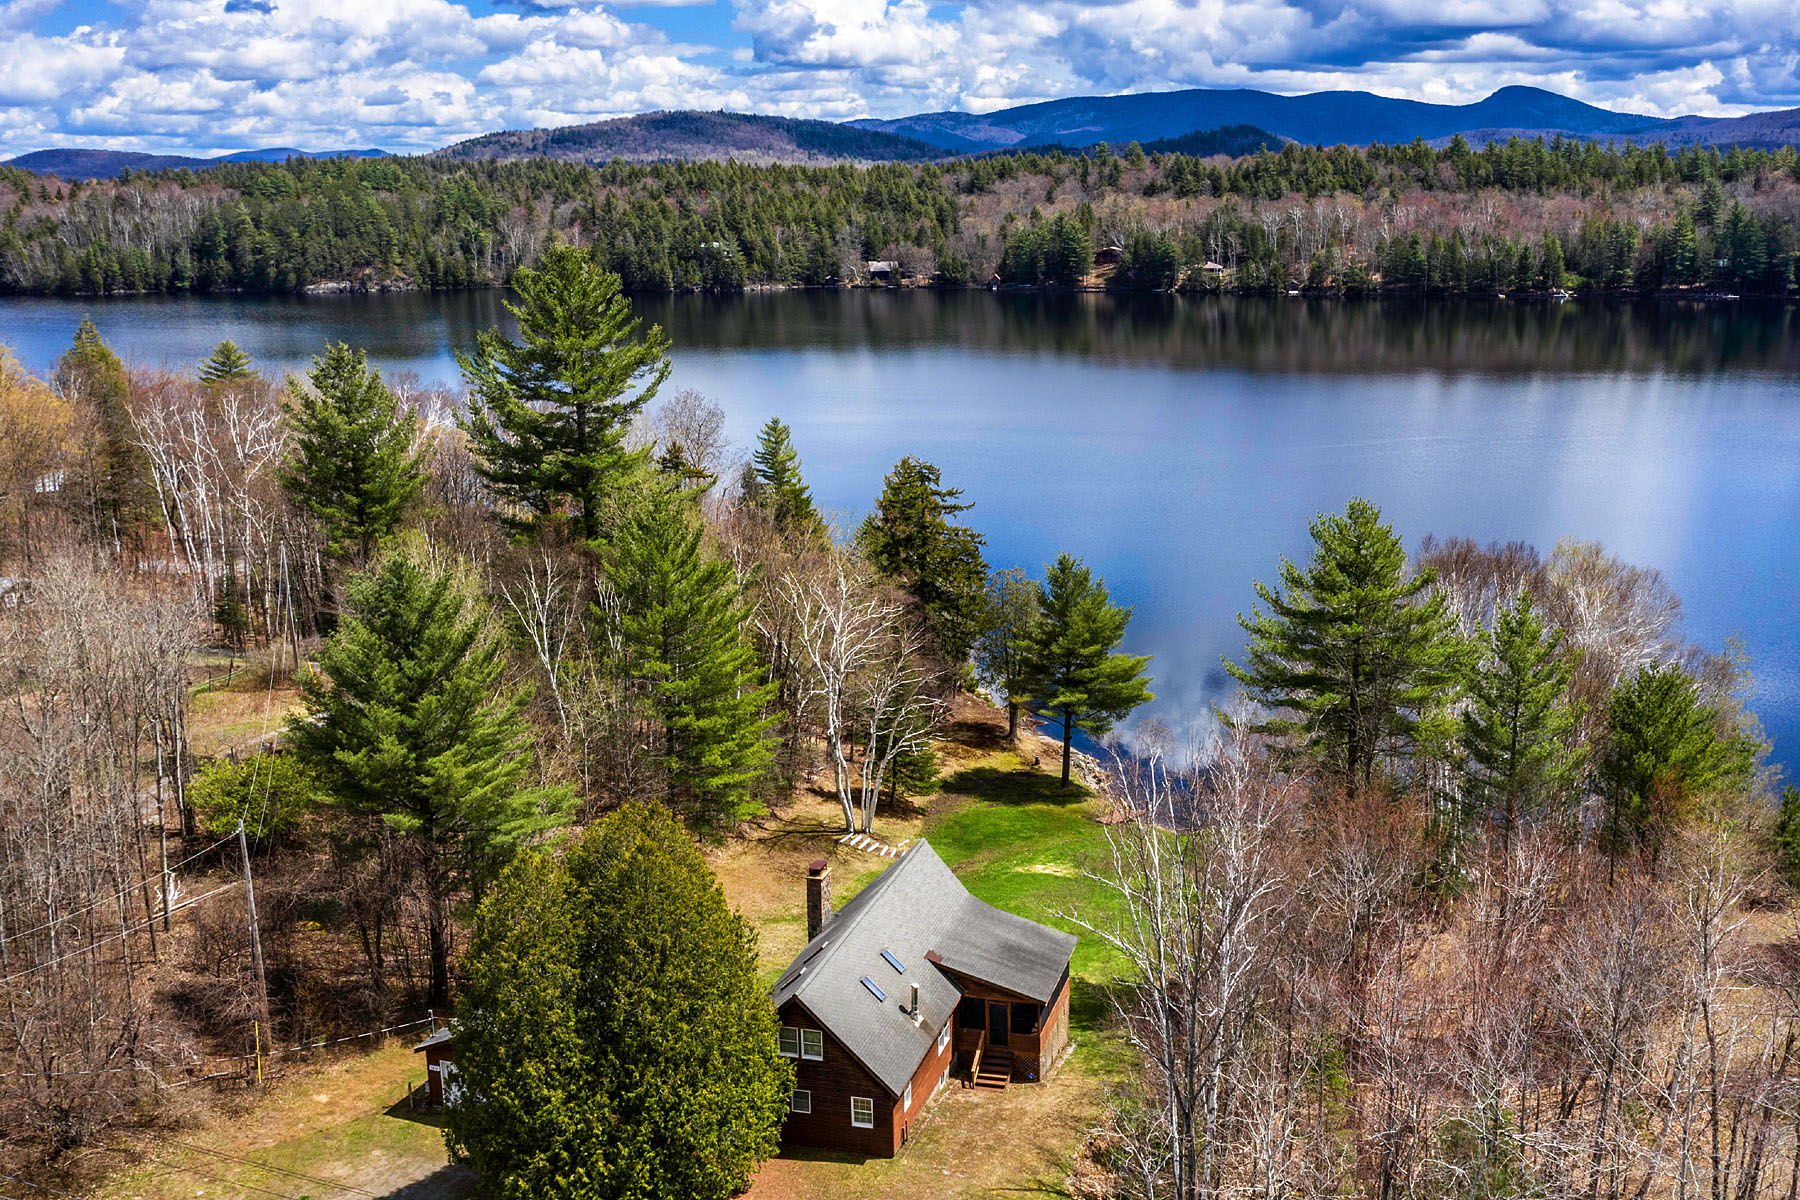 Single Family Homes for Sale at 5644 NYS Rt 30 5644 NYS Route 30 Indian Lake, New York 12842 United States